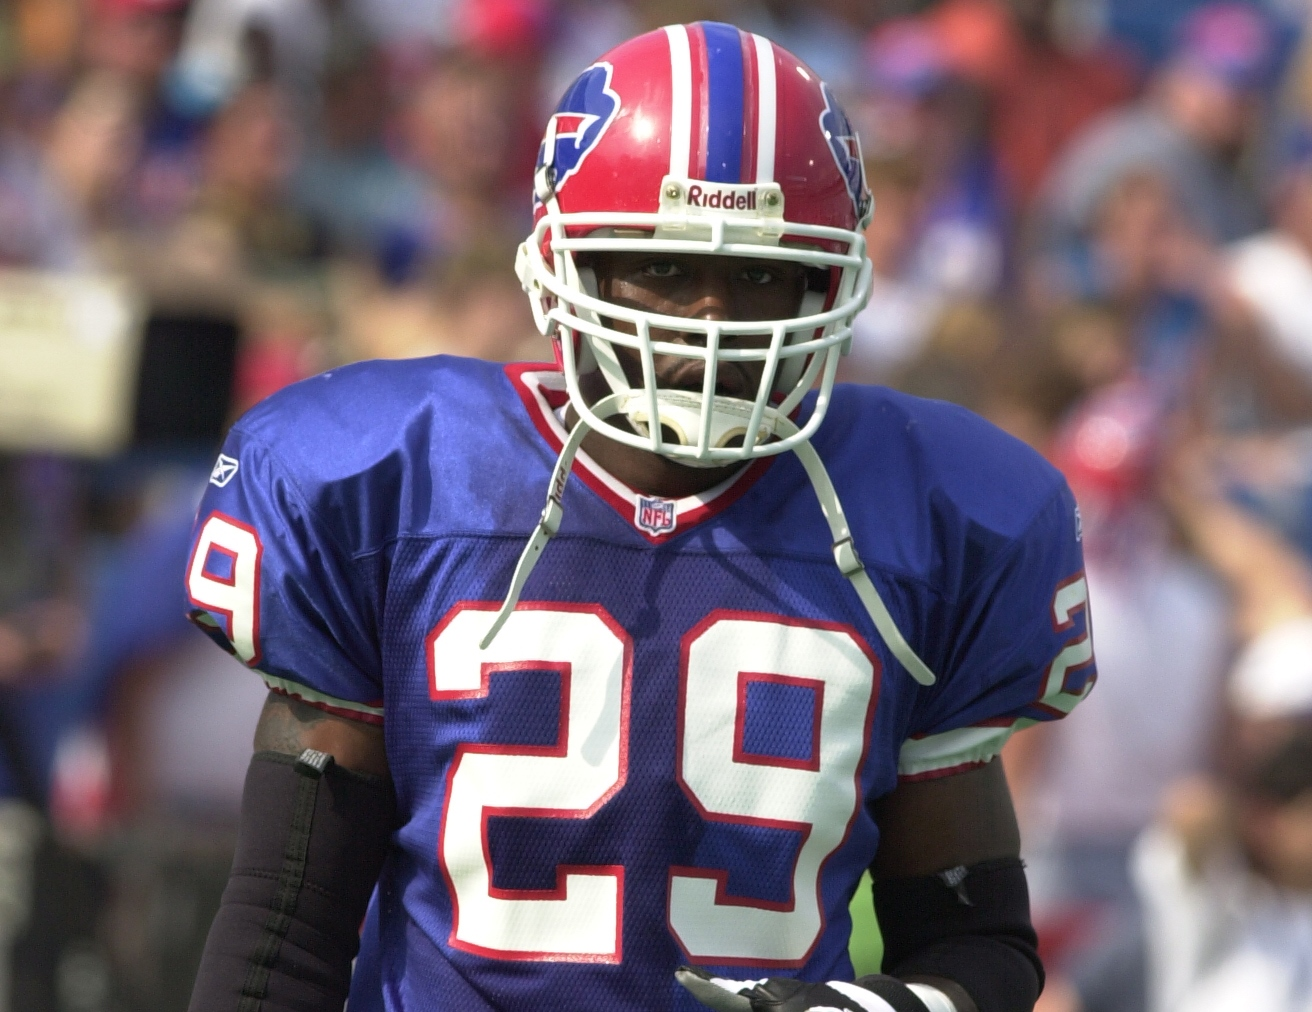 Keion Carpenter was an undrafted signing of the Buffalo Bills in 1999 out of Virginia Tech.  (James P. McCoy/News file photo)